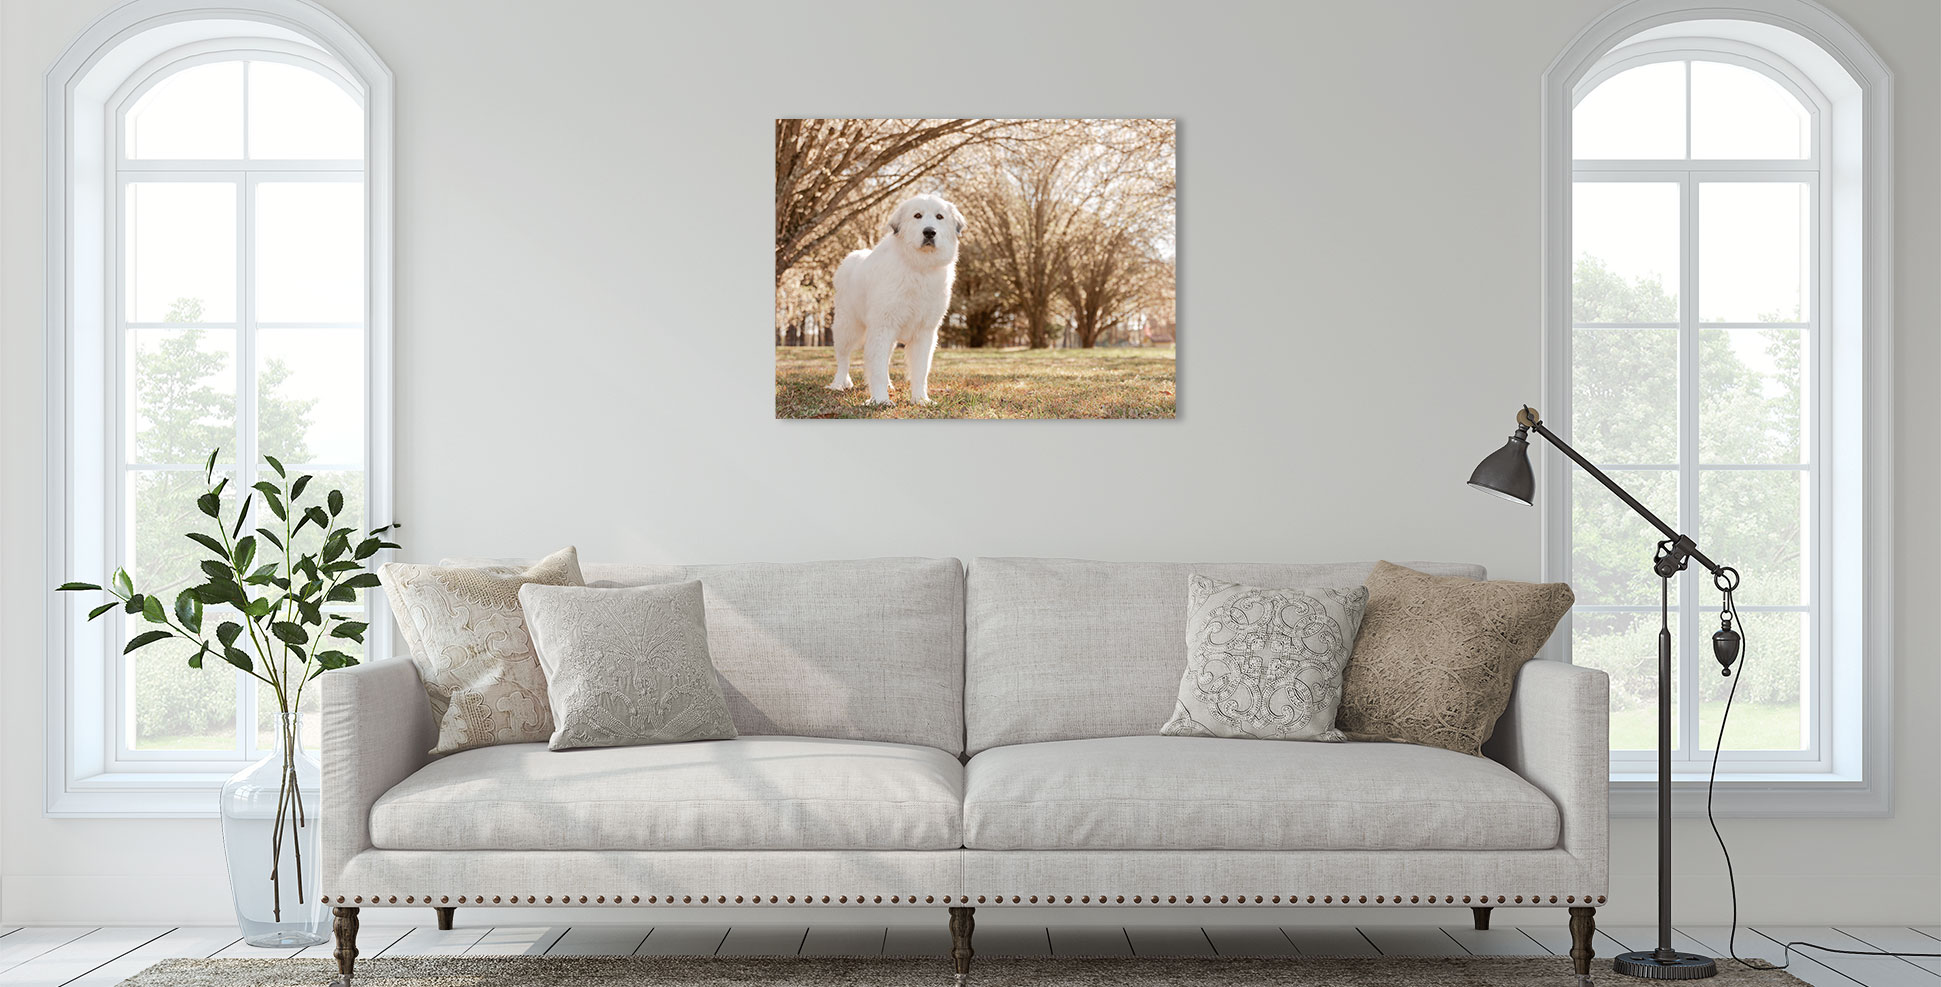 Photographic canvas is perfect for contemporary and timeless home decor. Make it personal with custom artwork featuring photographs of your dog taken by Atlanta dog photographer CM Bryson